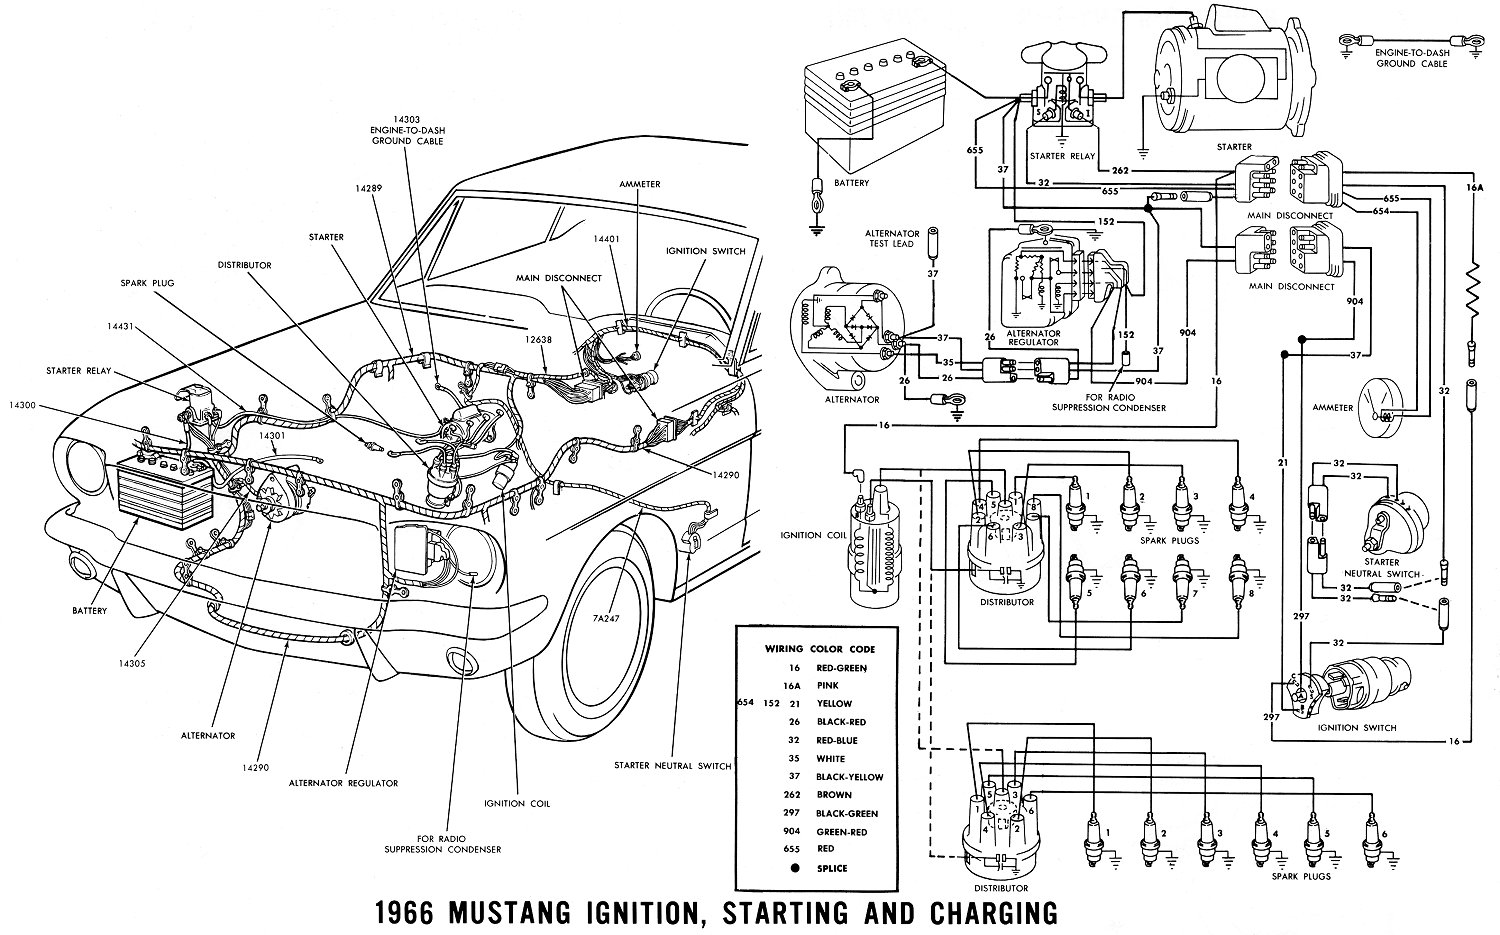 control wiring diagram symbols with 1966 Mustang Ignition Wiring Diagram on T11540661 Replace water inlet valve miele as well Carrier Ac Unit Wiring Diagram together with 300w Power Inverter Circuit additionally Intro To Electrical Diagrams in addition Conexion Resistencias Horno Trifasico Industrial T1256995.